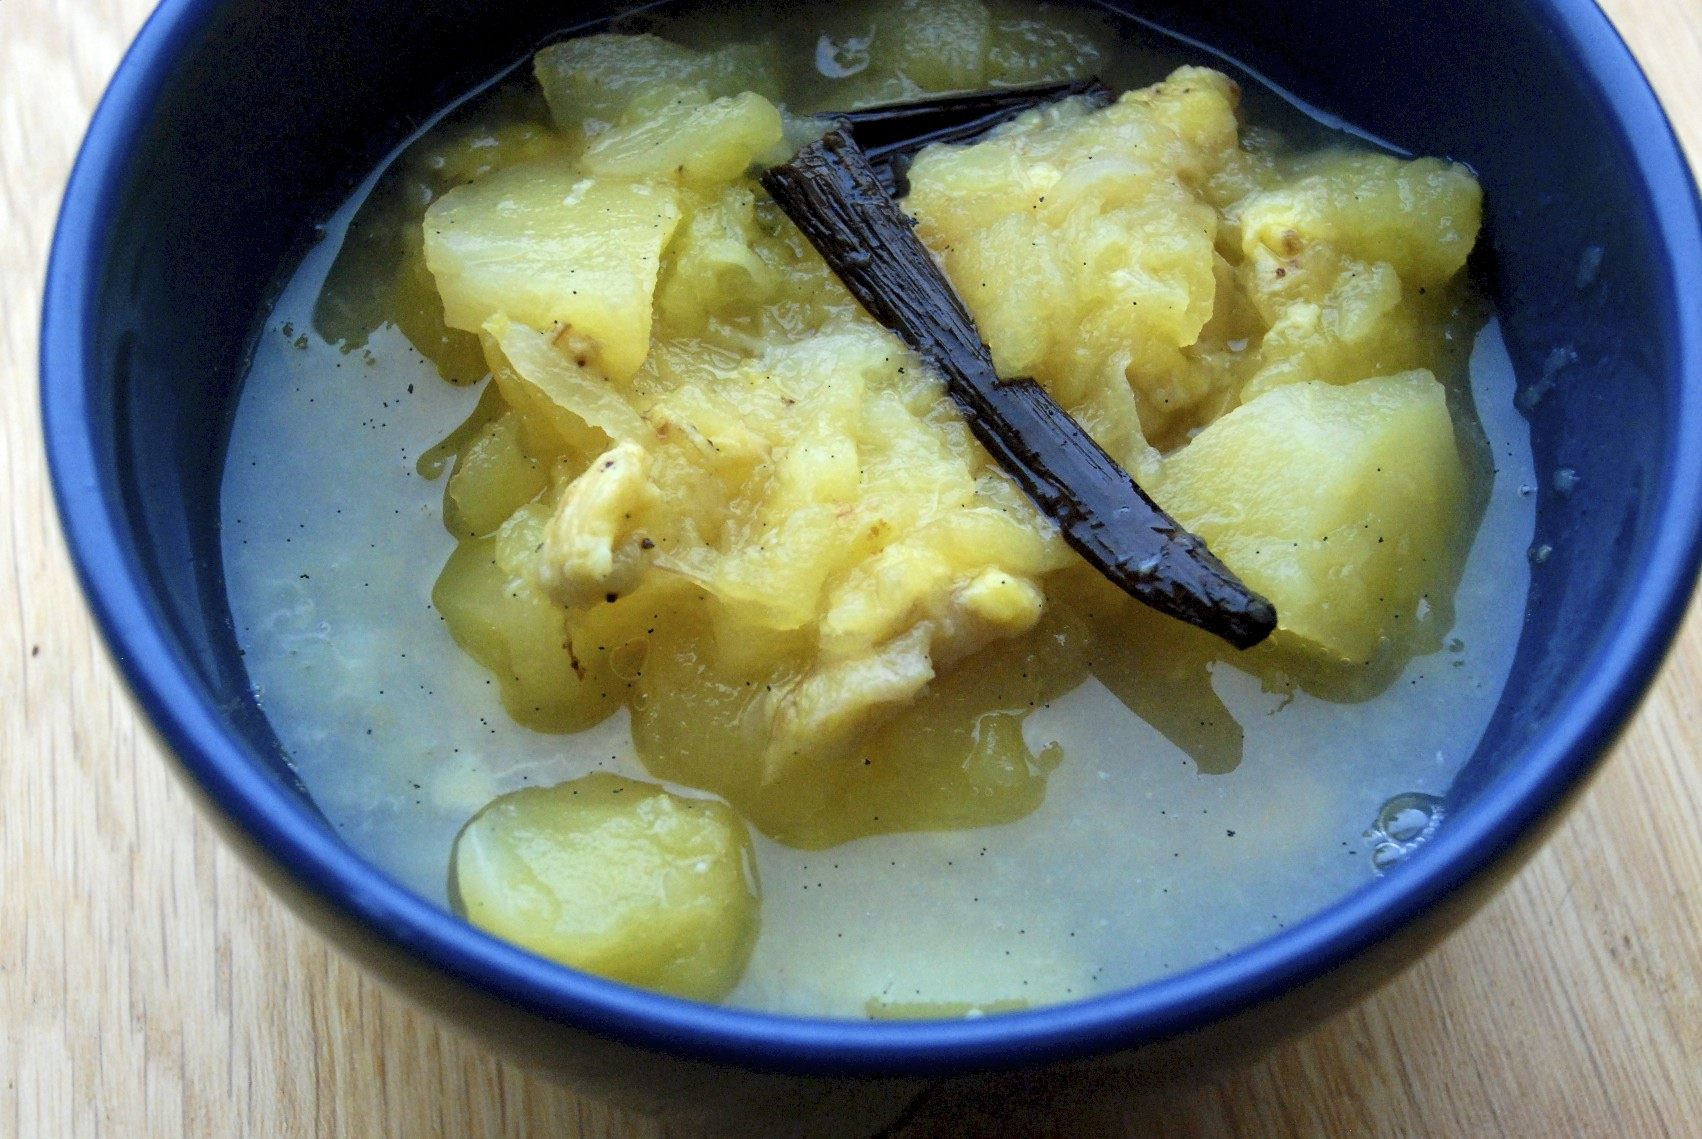 Vanilla-Stewed Apples + Bananas